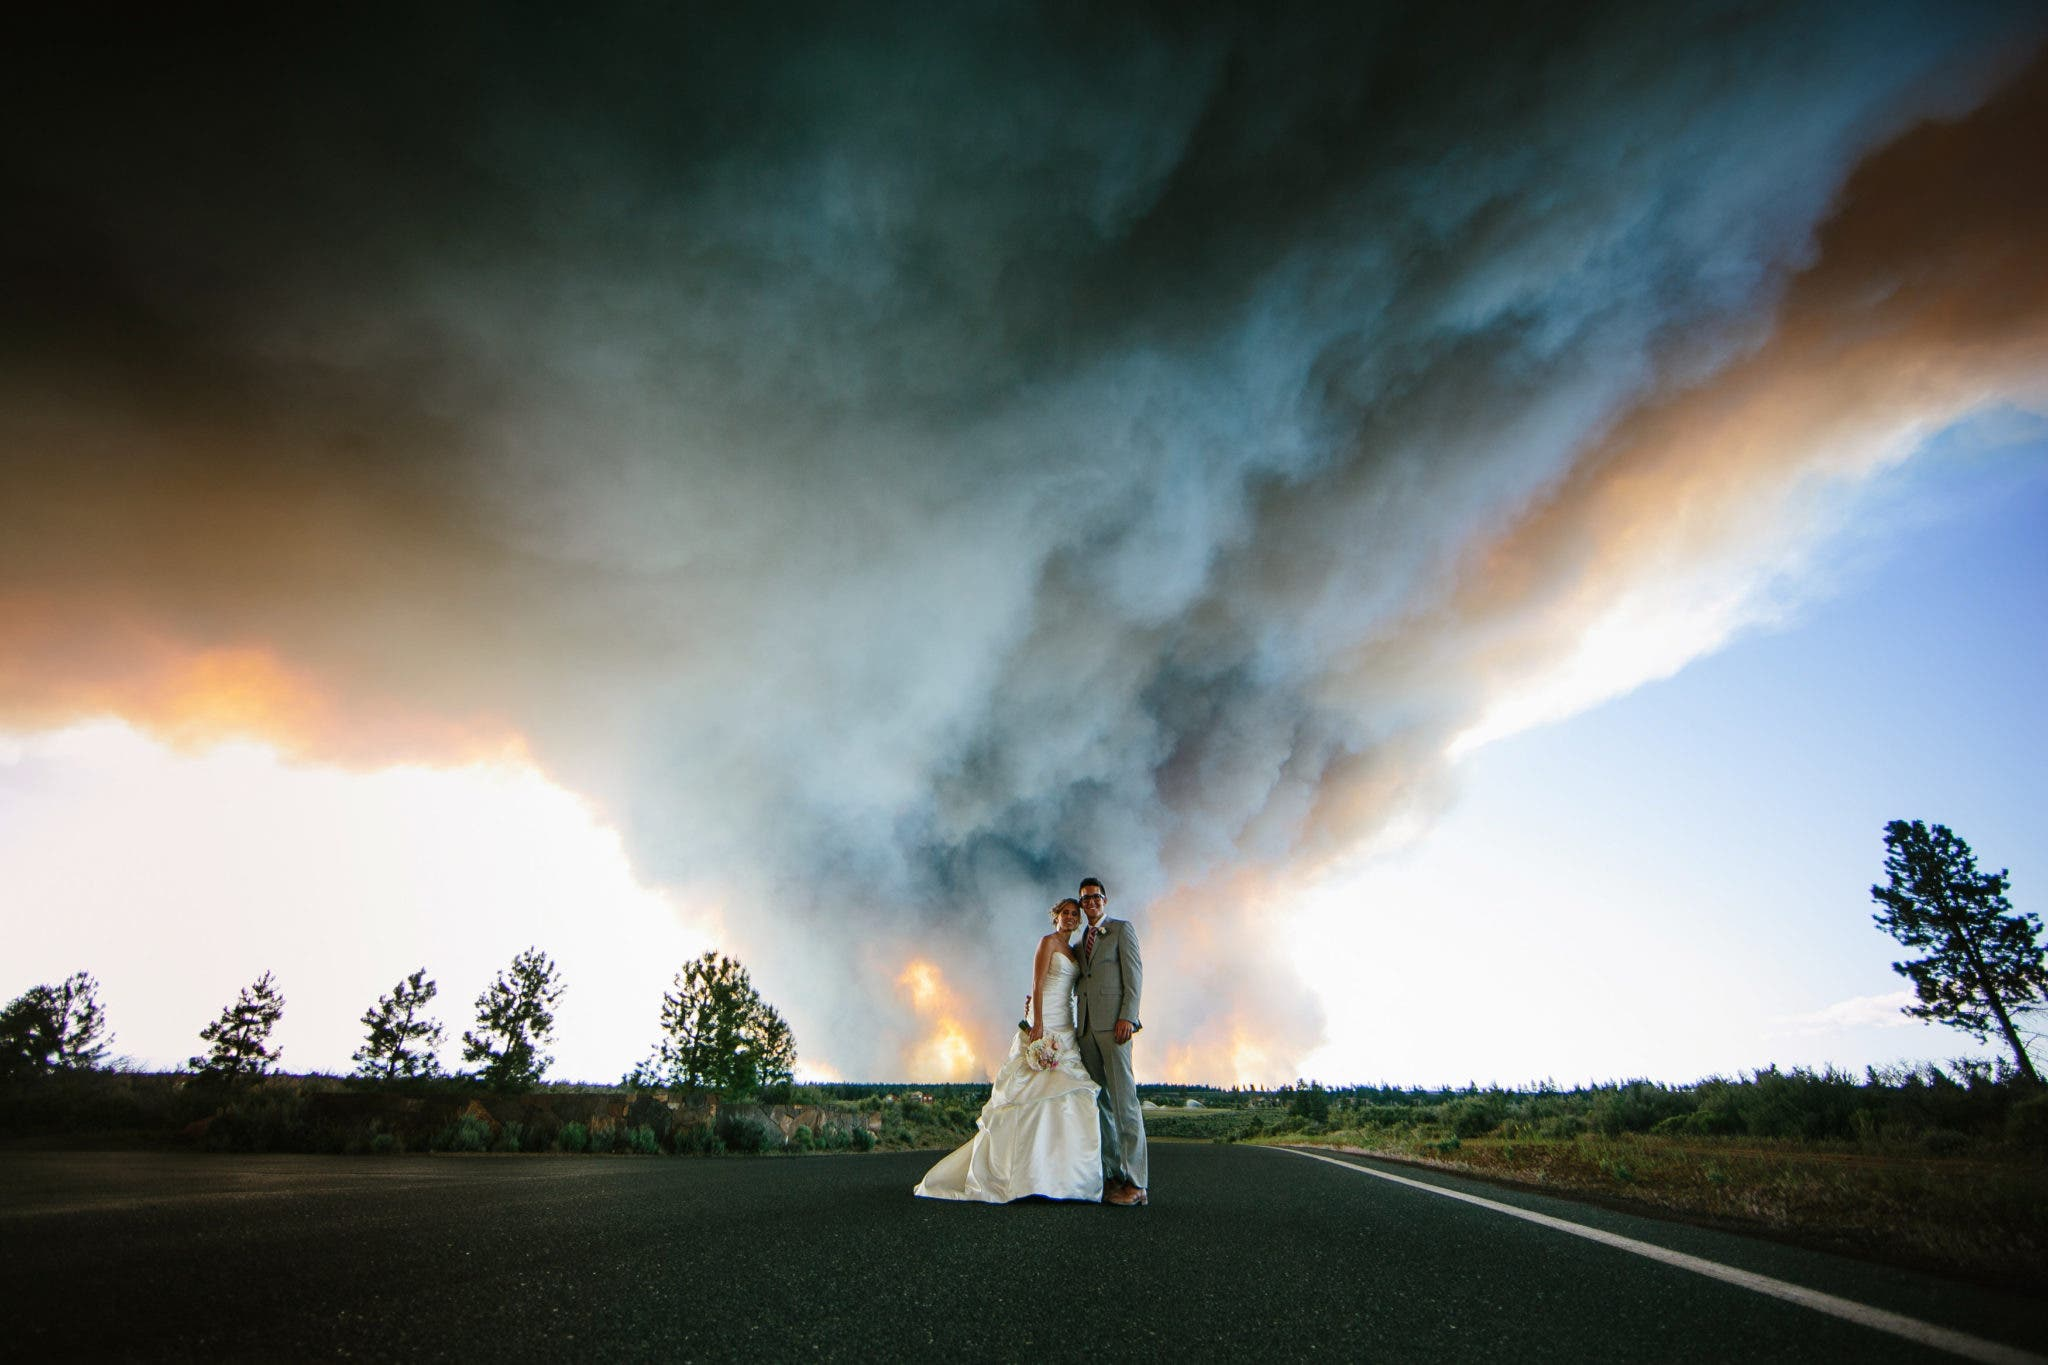 Wedding Photographer Turns Approaching Wildfire into Newlyweds' Photographic Gold